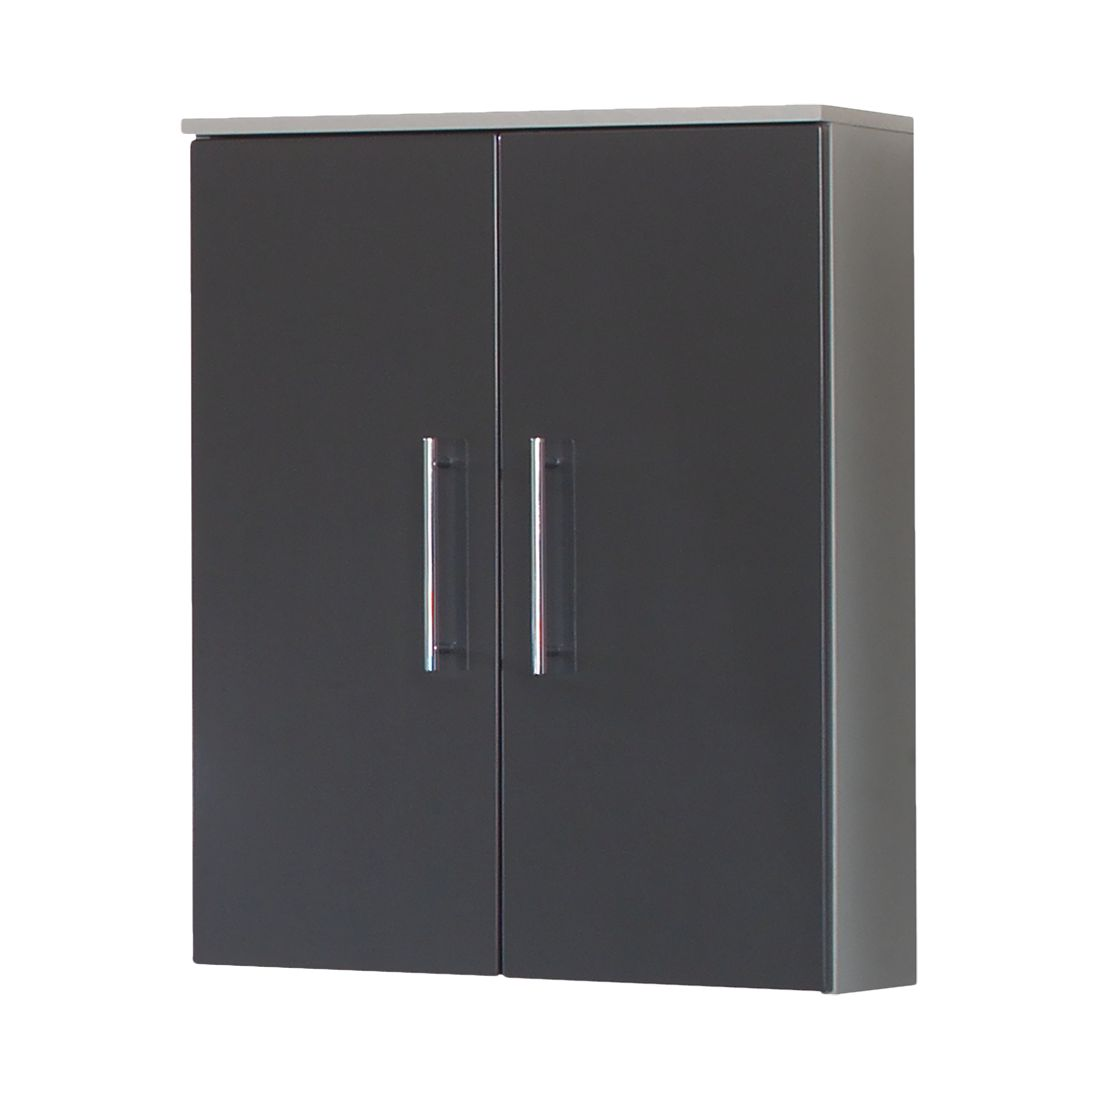 bad h ngeschrank poco mdf spanplatte anthrazit hochglanz silber modell 1. Black Bedroom Furniture Sets. Home Design Ideas